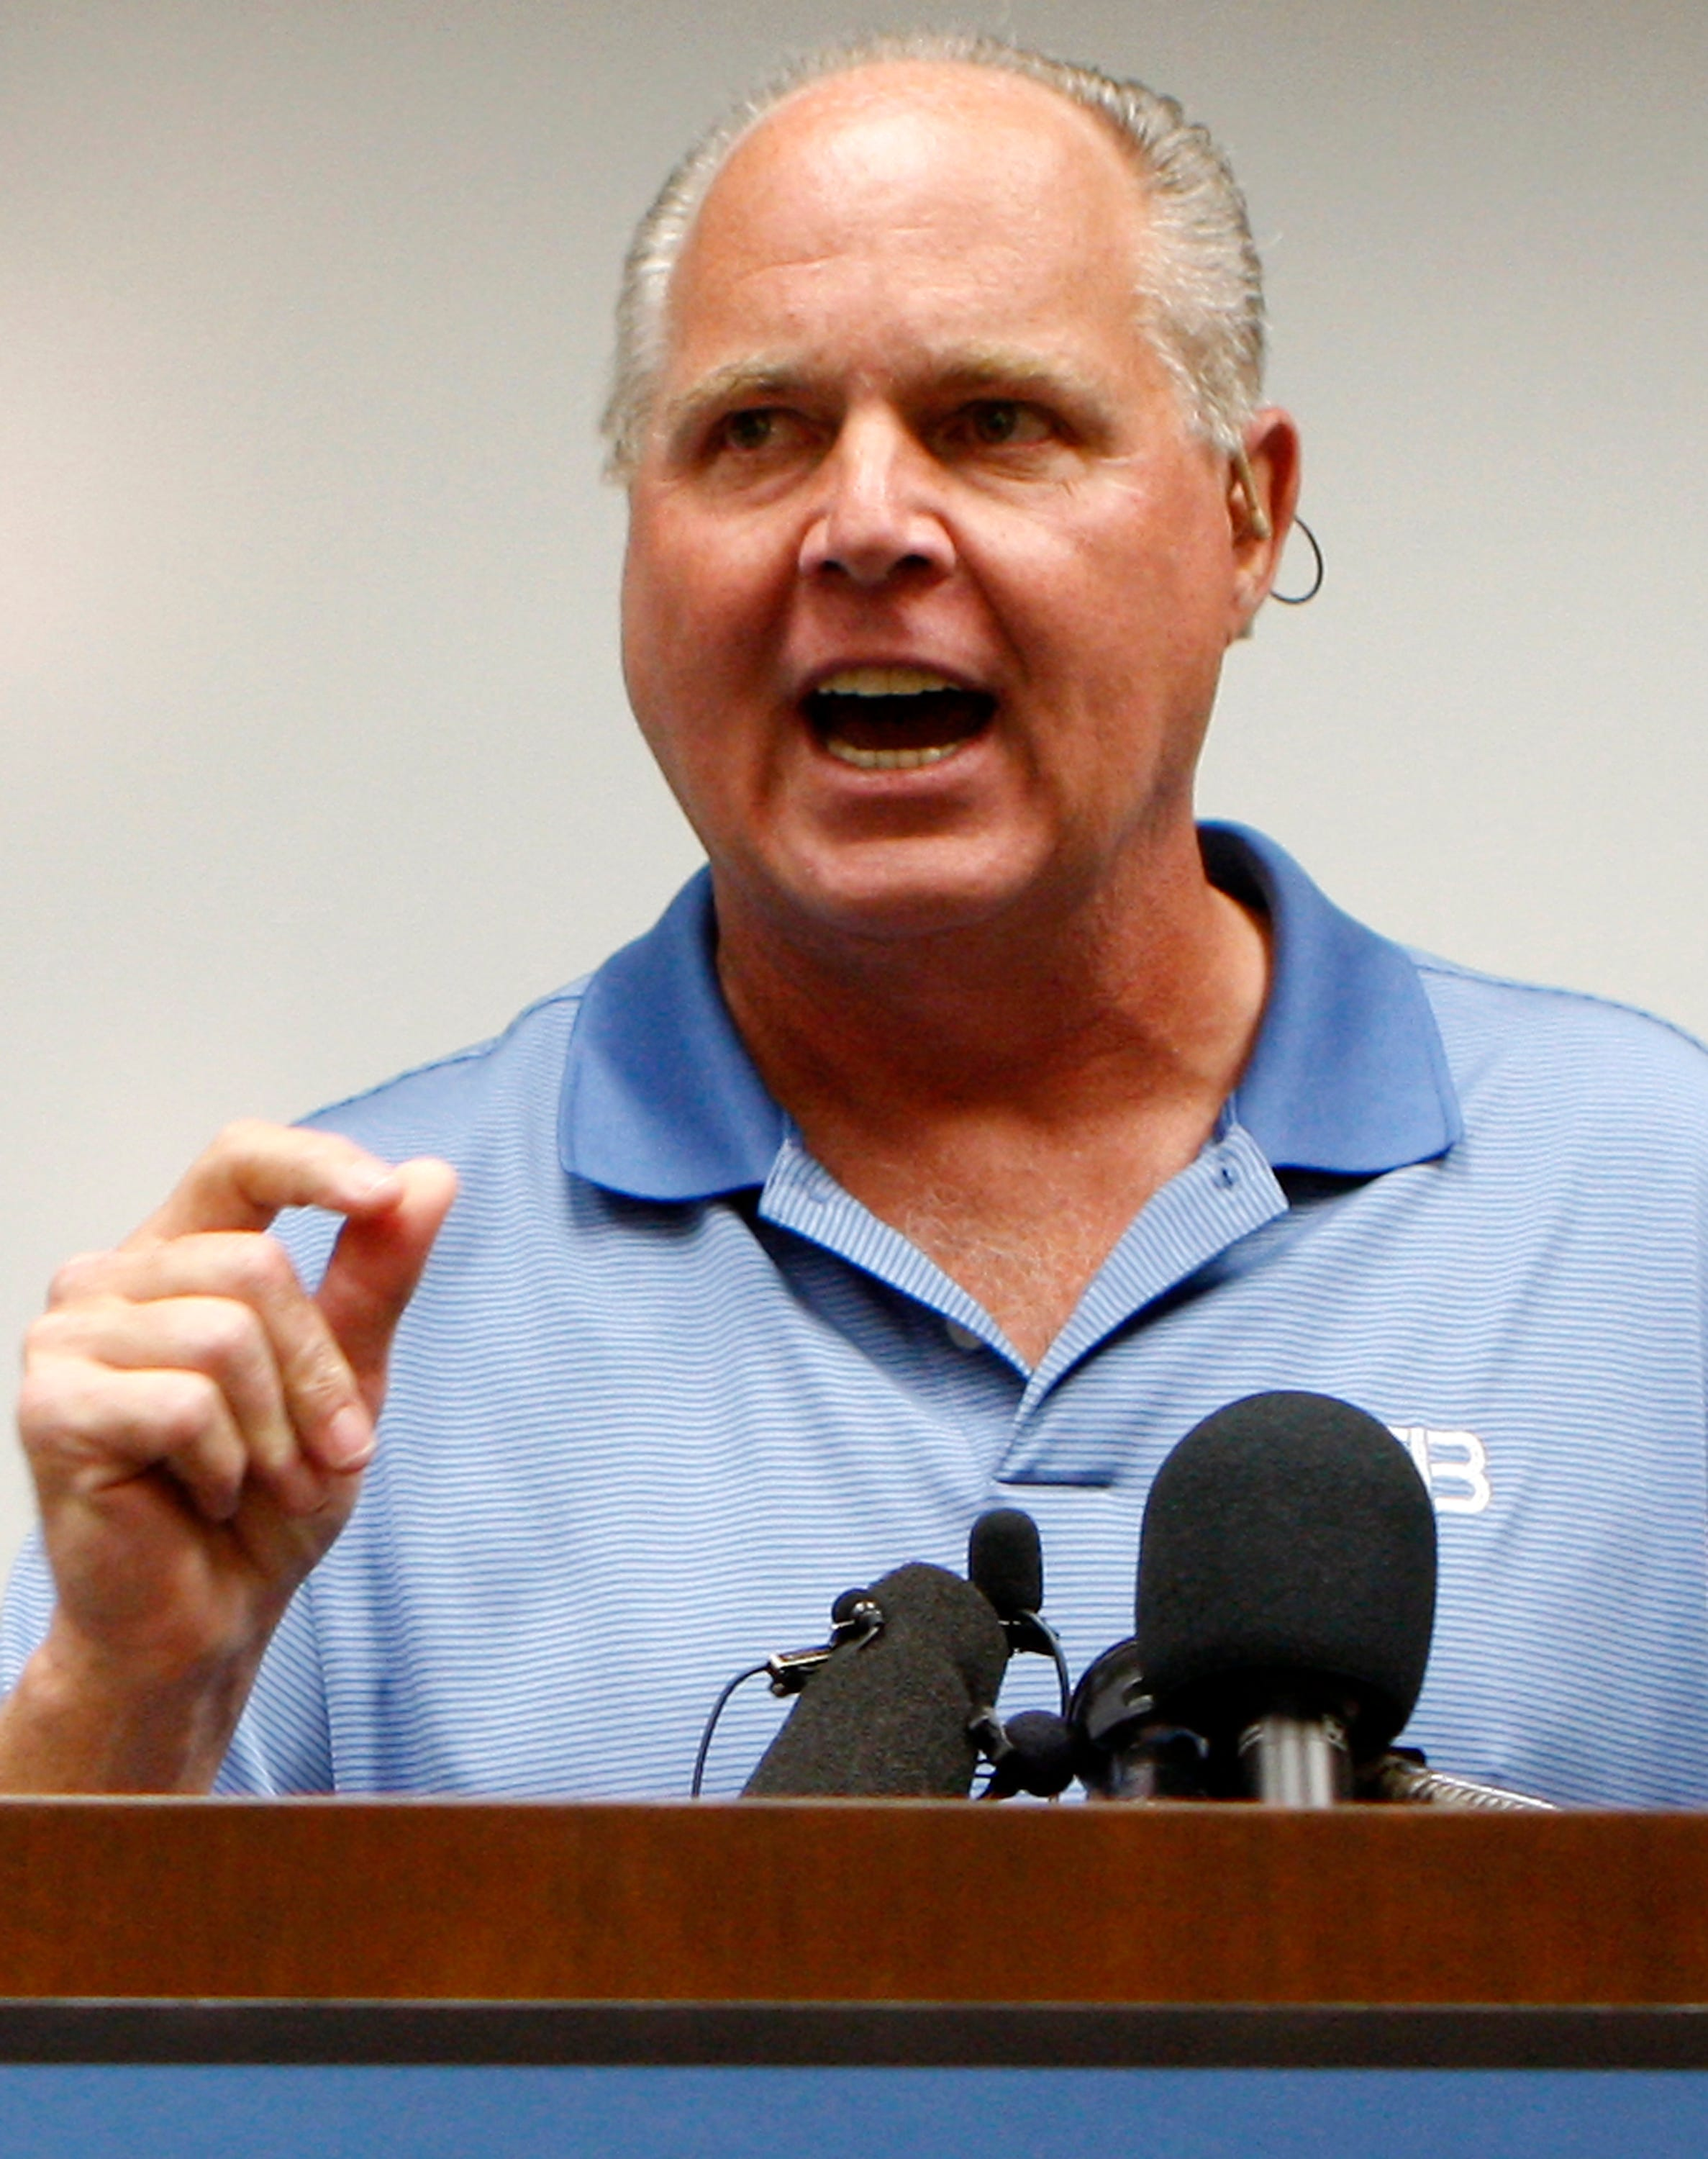 Rush Limbaugh says Trump's NFL stance is 'starting to make me nervous'